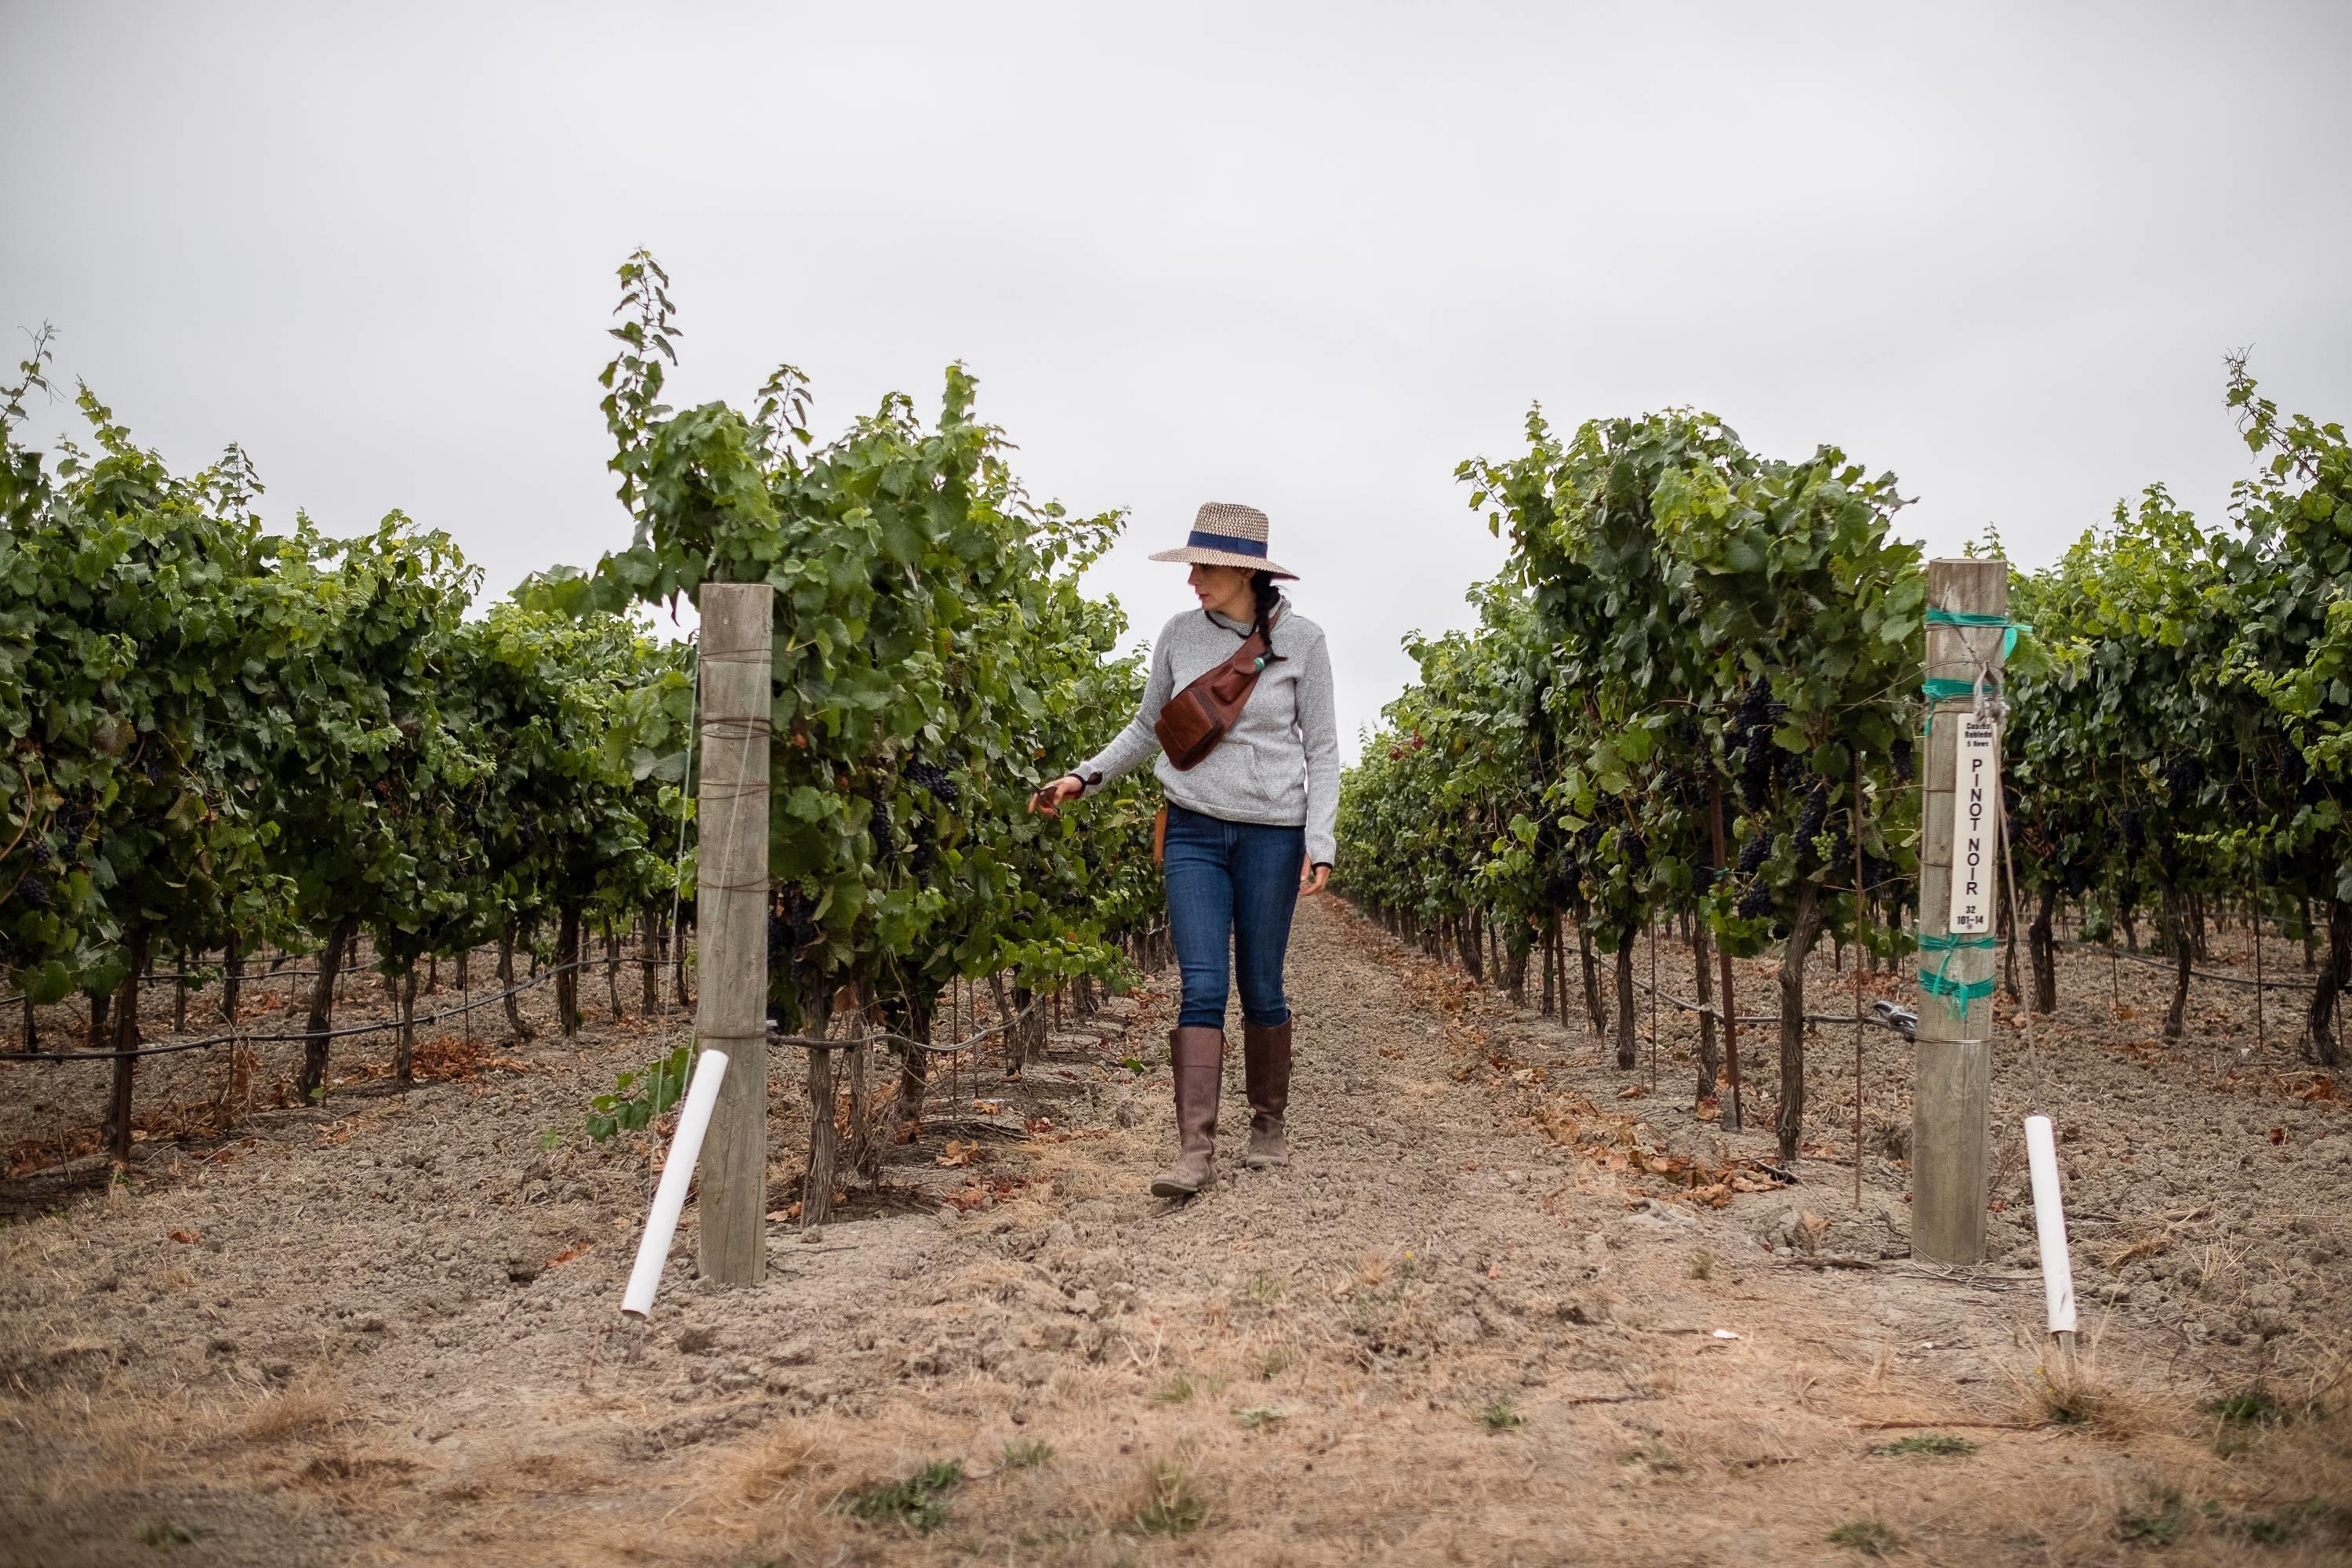 New Documentary Shines Light on Latinx Winemakers in Sonoma